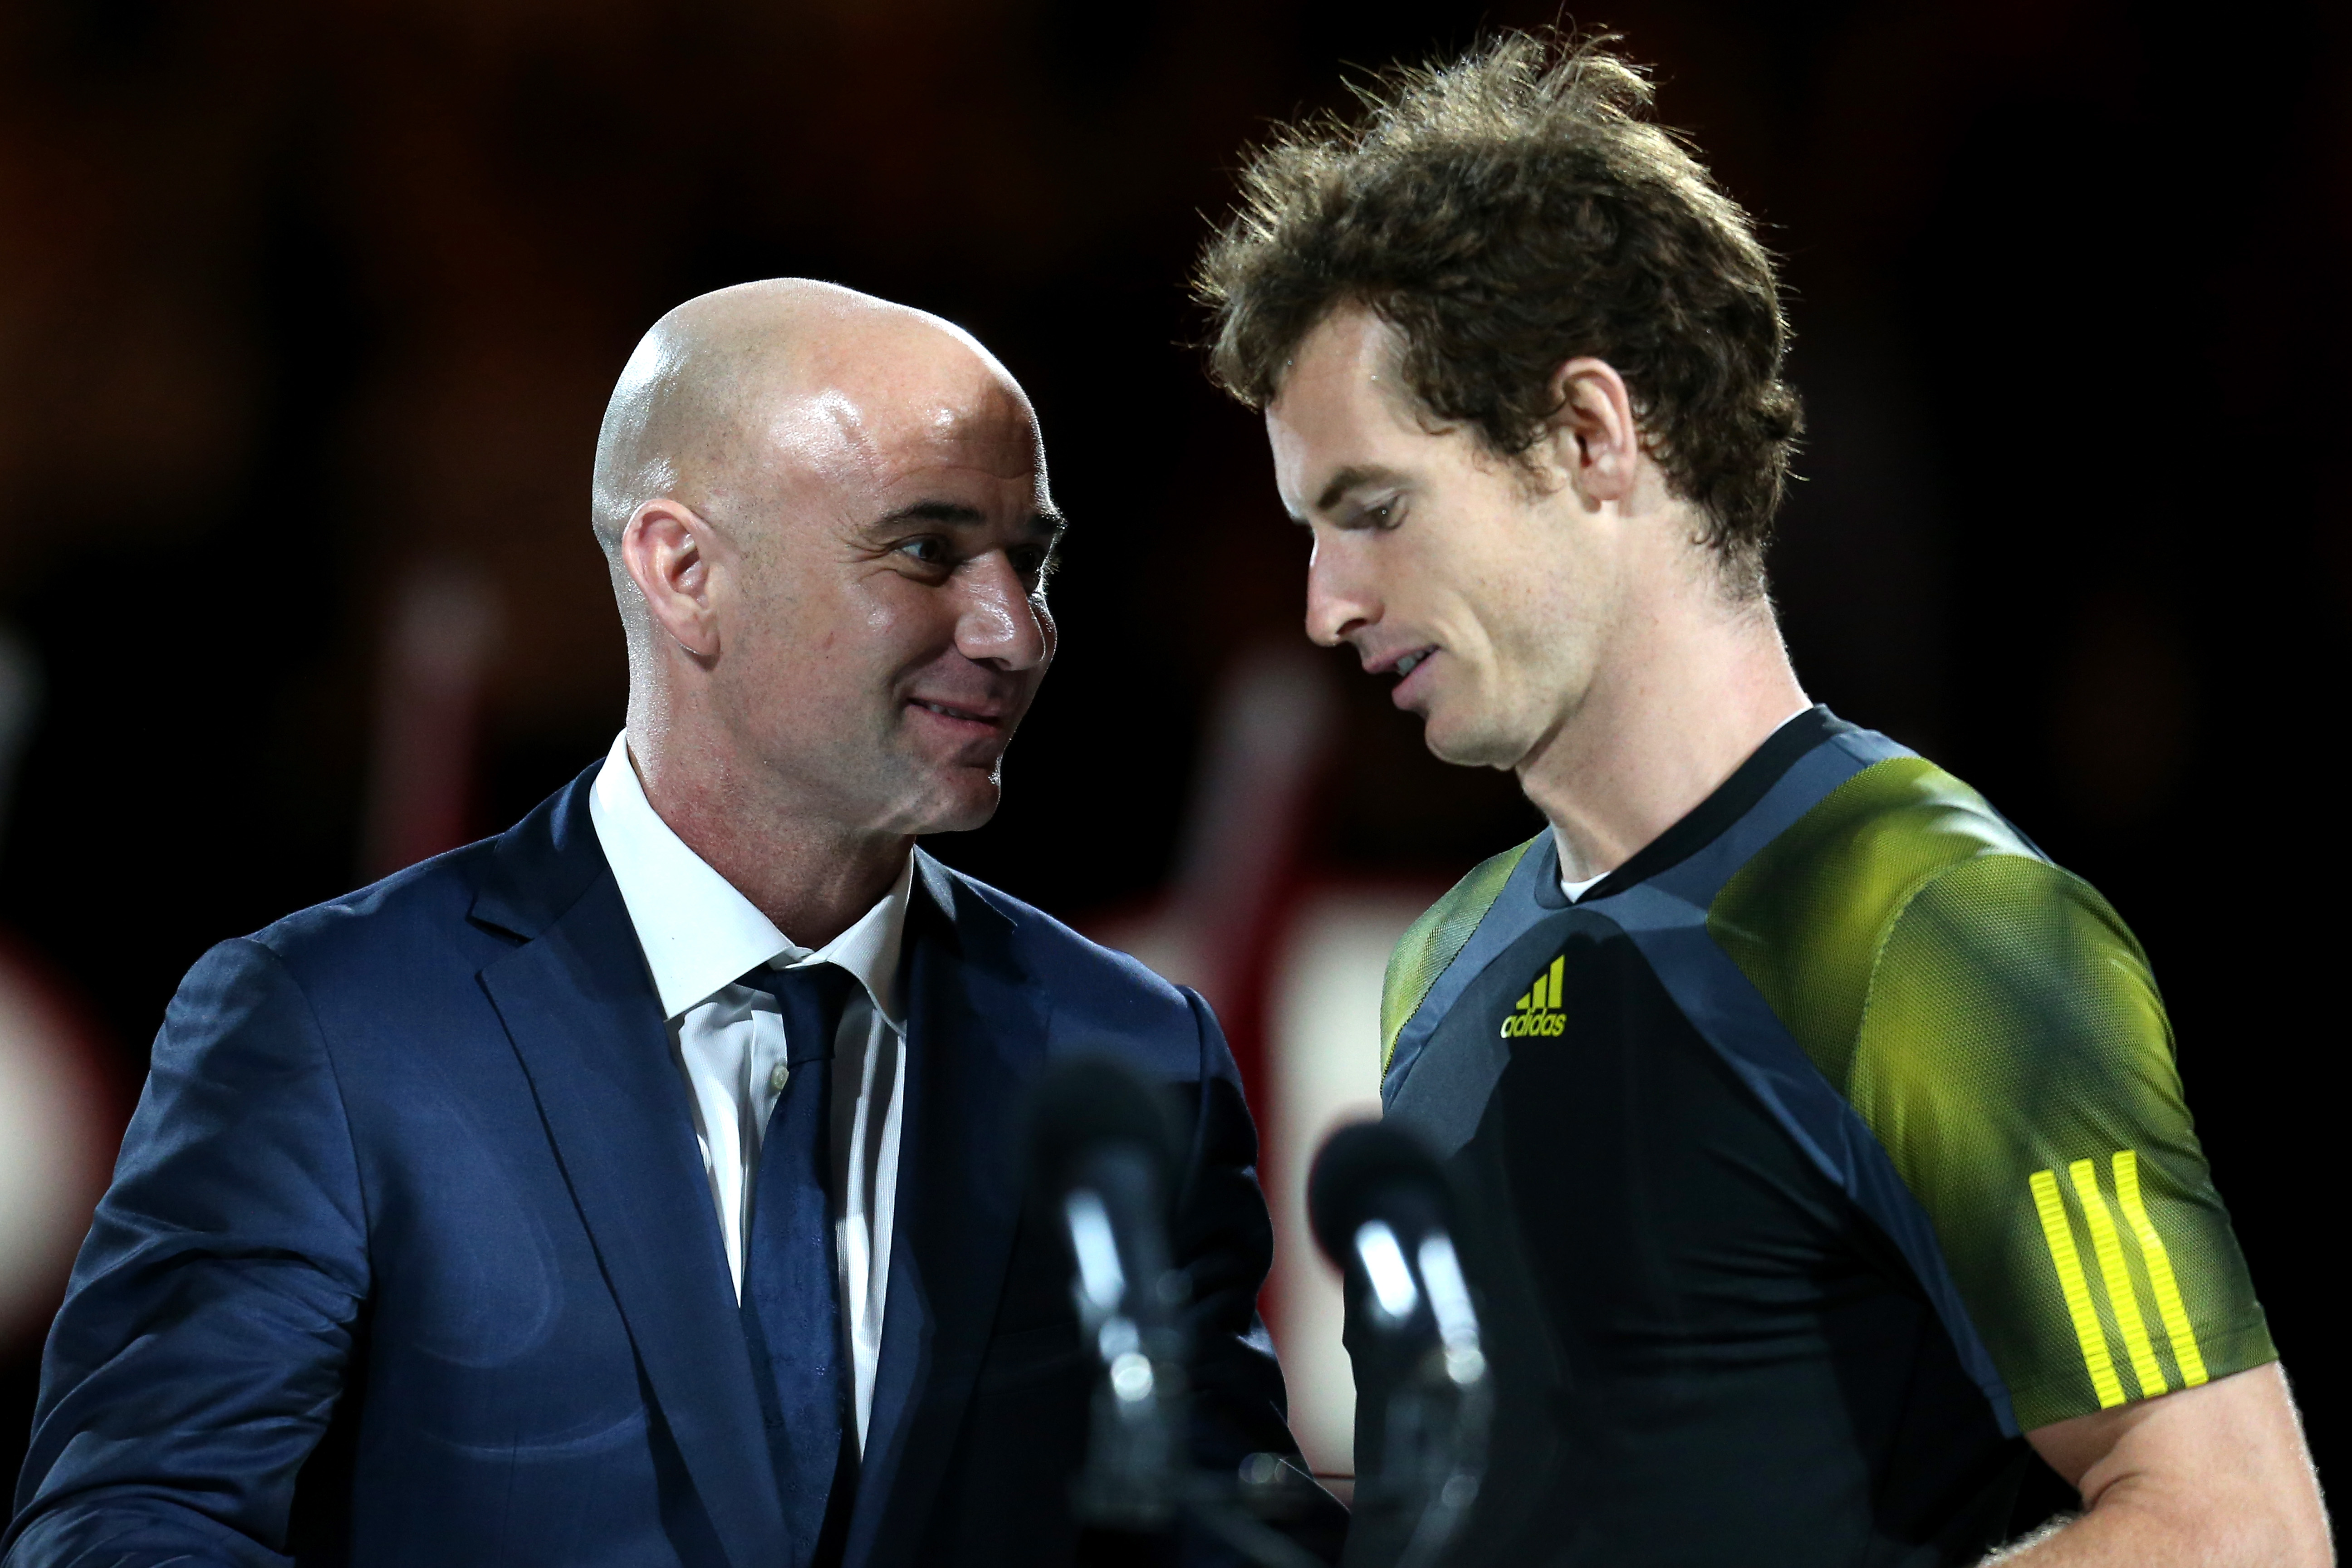 Andre Agassi: Sir Andy Murray's athleticism is actually hampering him